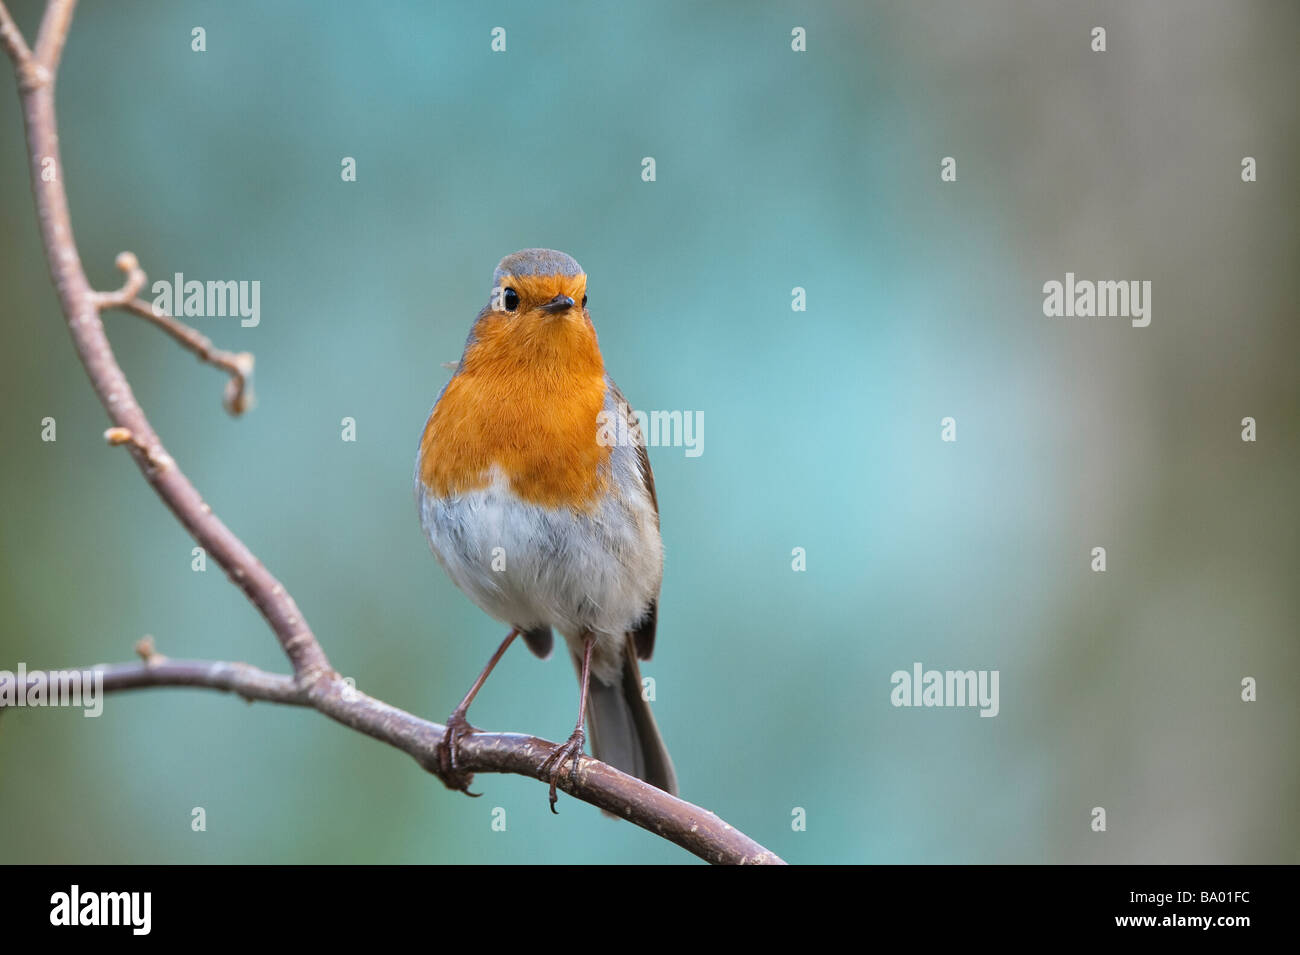 Robin perched on a branch against a blue green background - Stock Image